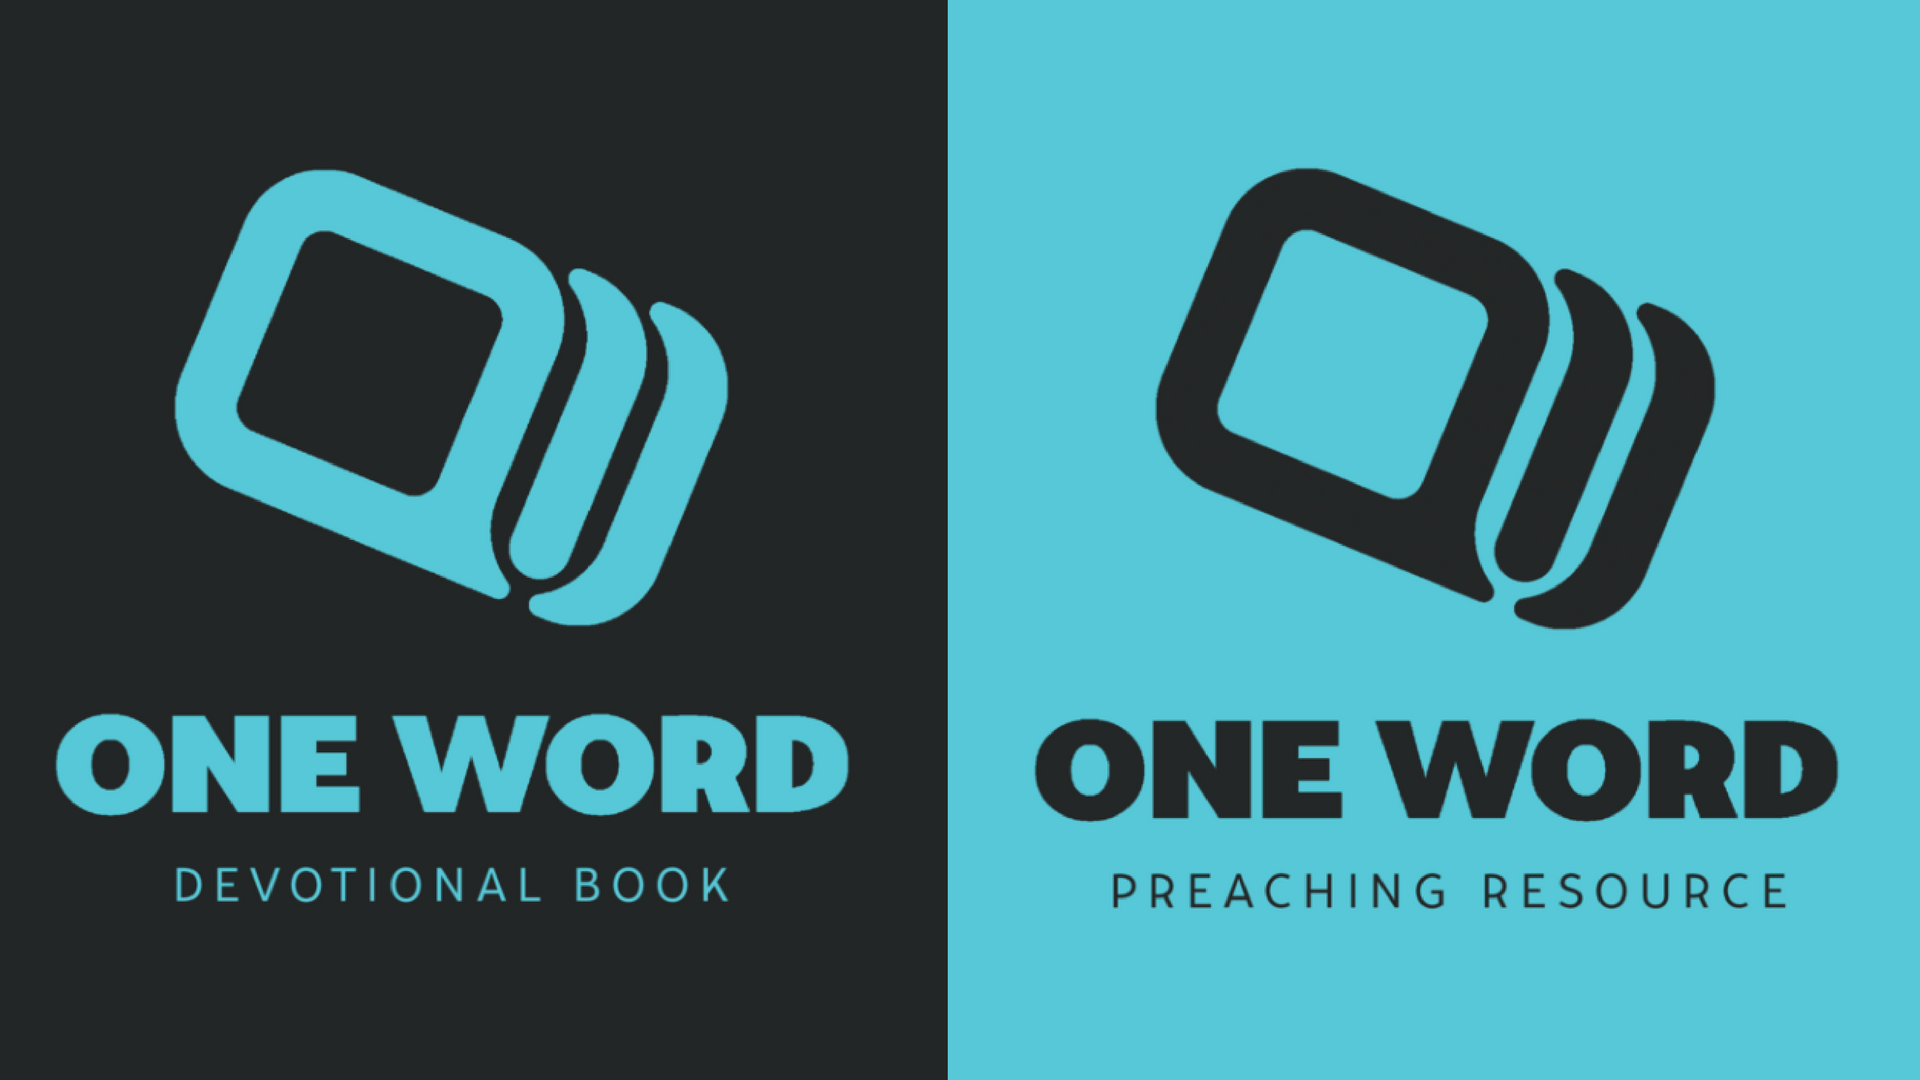 Learn more and preacher better one word at a time.